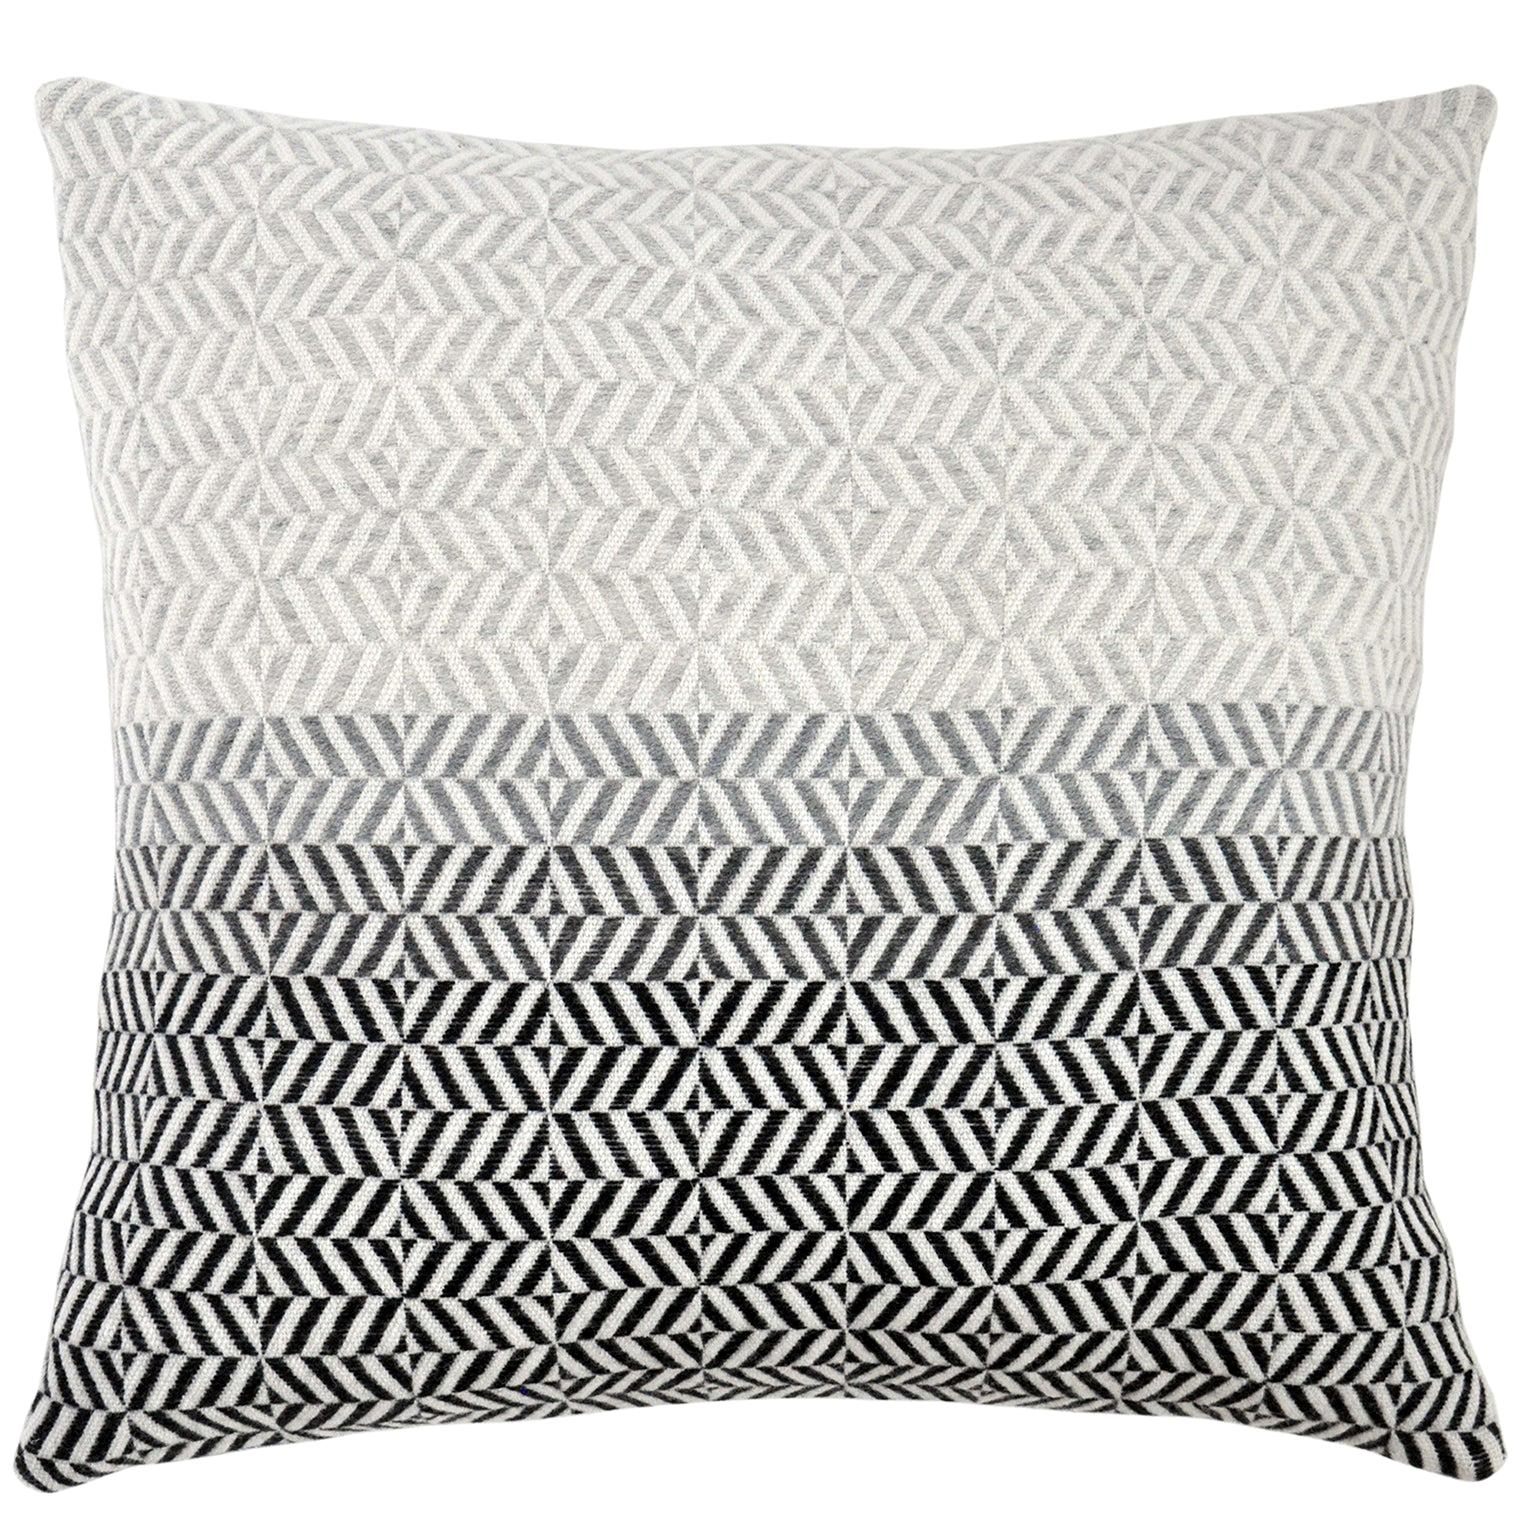 Handwoven 'Uccle' Block Geometric Merino Wool Cushion Pillow, Pearl Grey